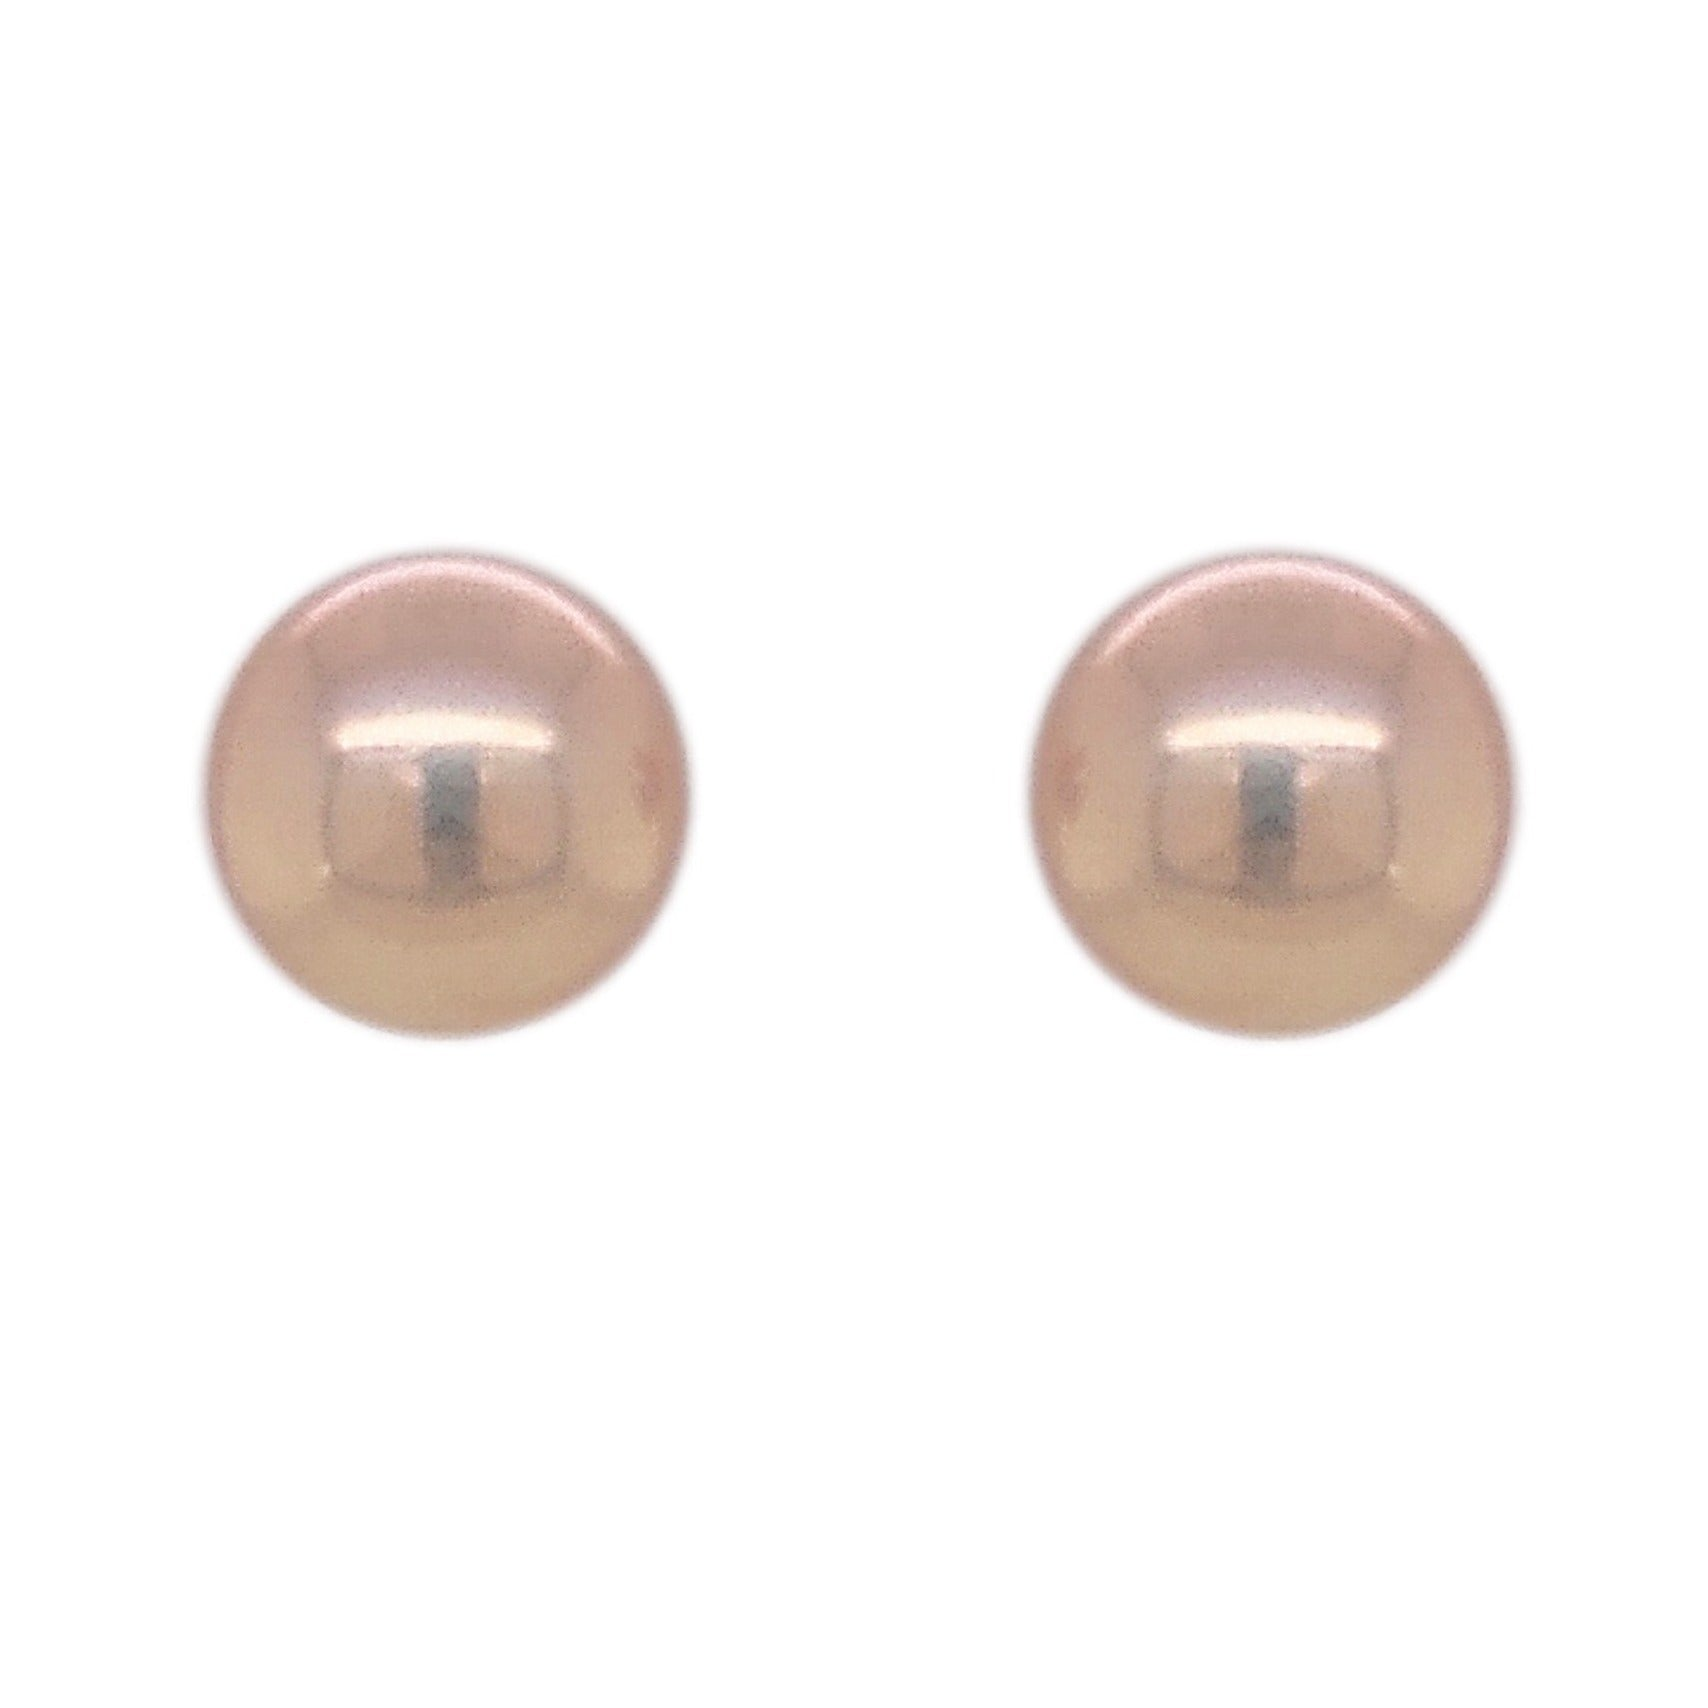 9ct Yellow Gold Natural Freshwater 6.0mm Bouton Stud Earrings